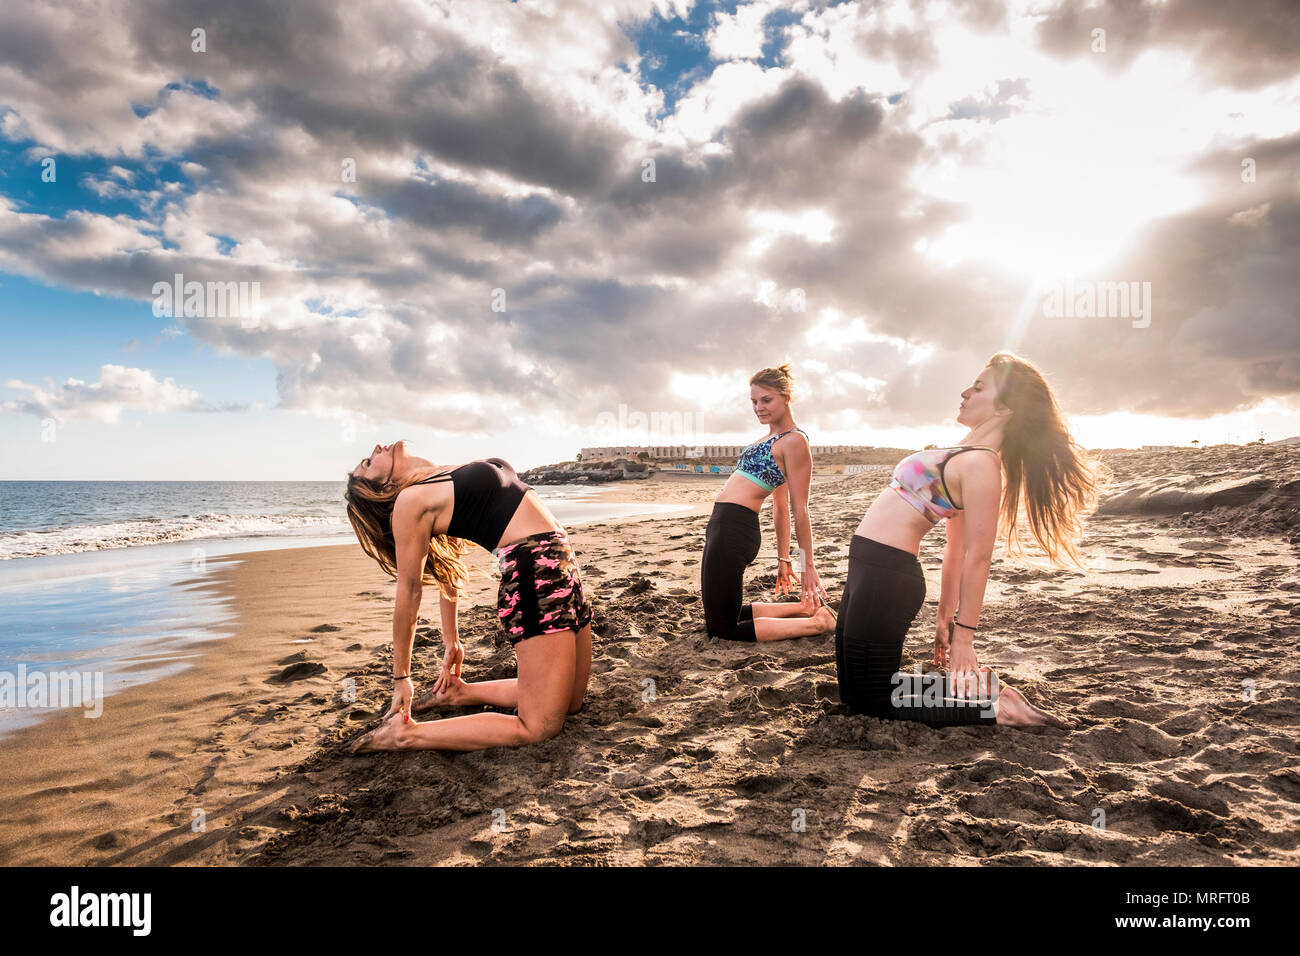 pilates classes and lesson for group of people at the beach. three young beautiful model women doing fitness on the shore near the ocean water. wonder - Stock Image